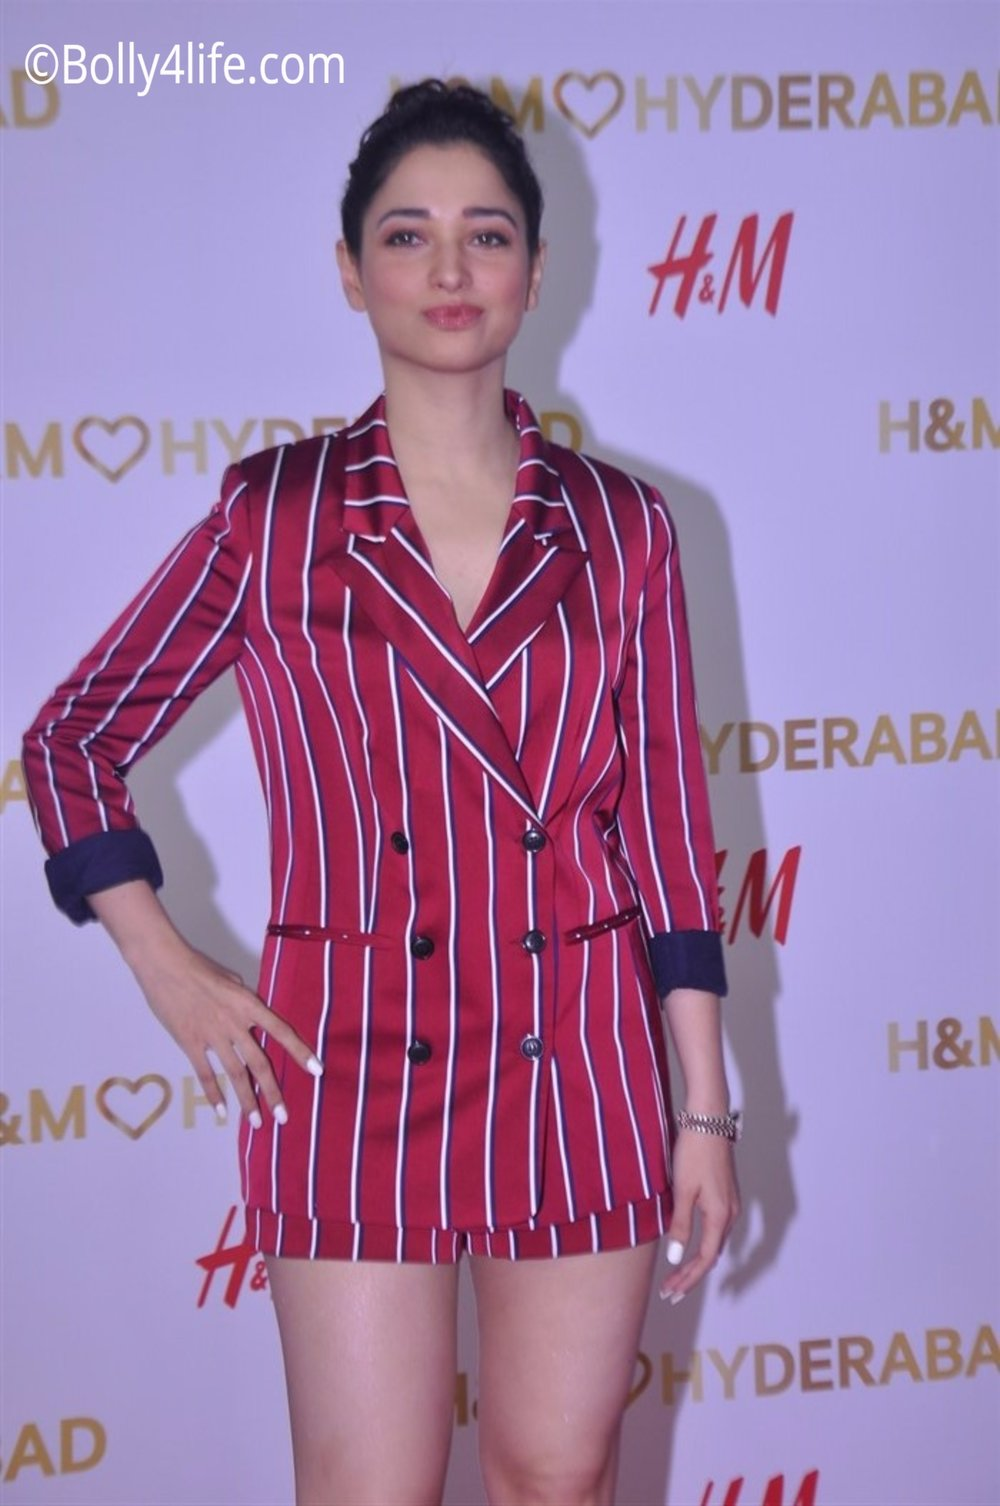 actress-hms-vip-party-inorbit-mall-hyderabad-3e5f4b2.jpg